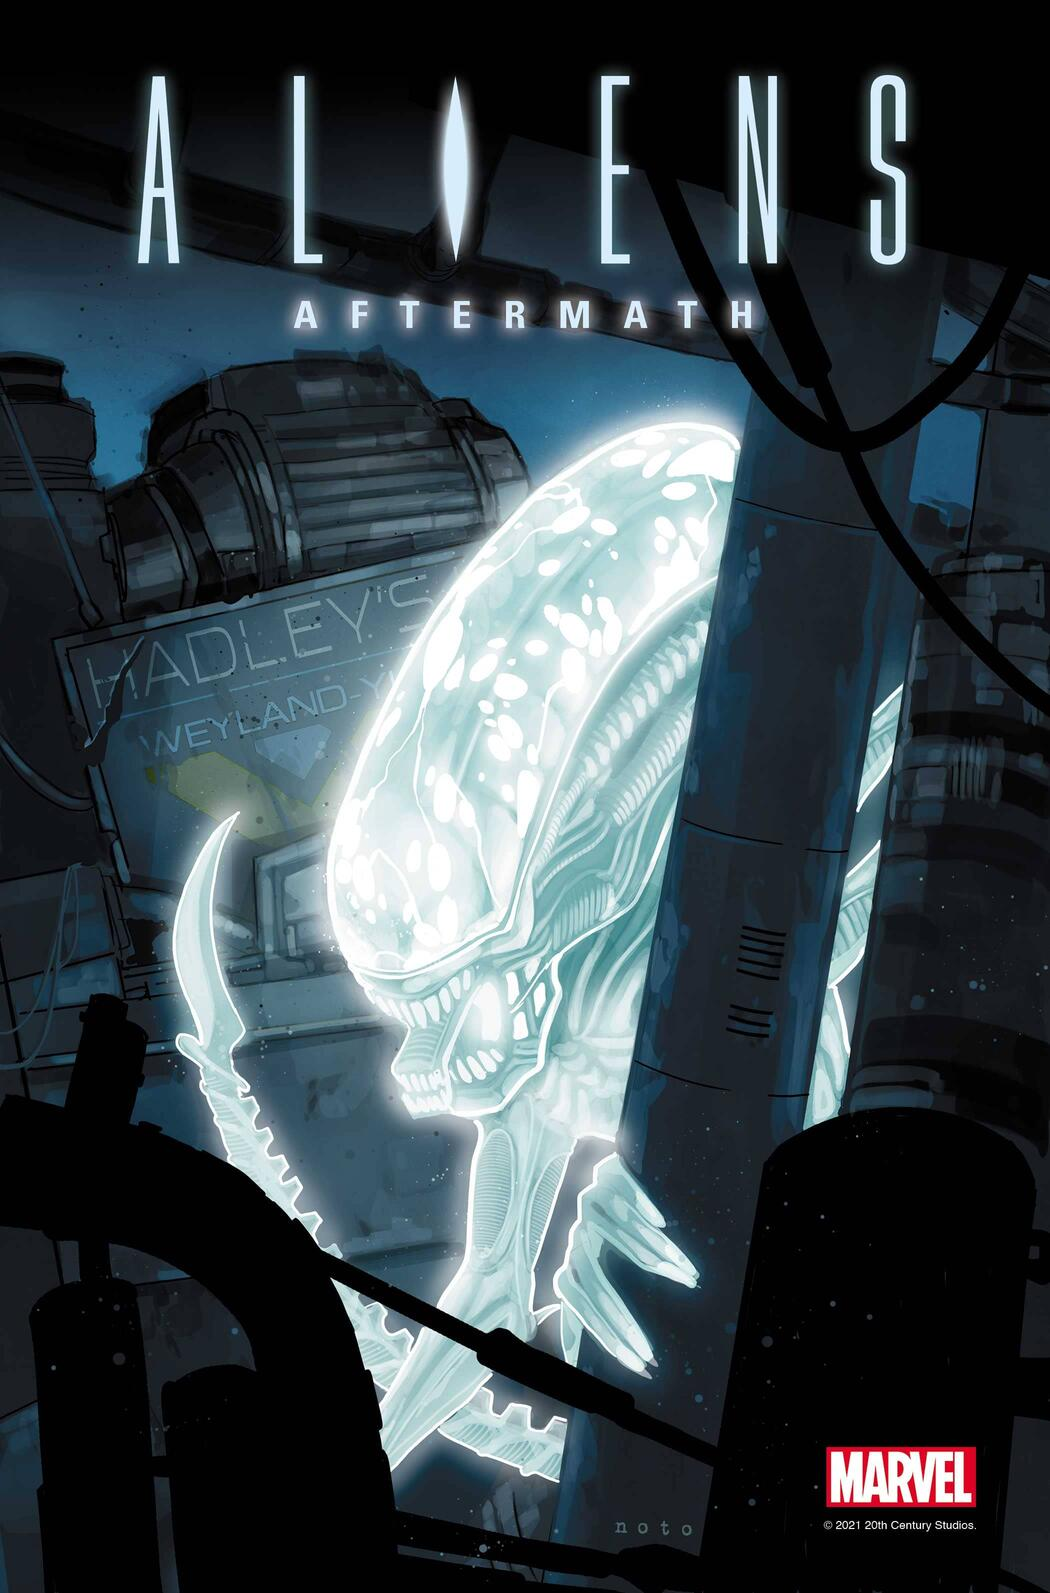 ALIENS: AFTERMATH #1 cover by Phil Noto